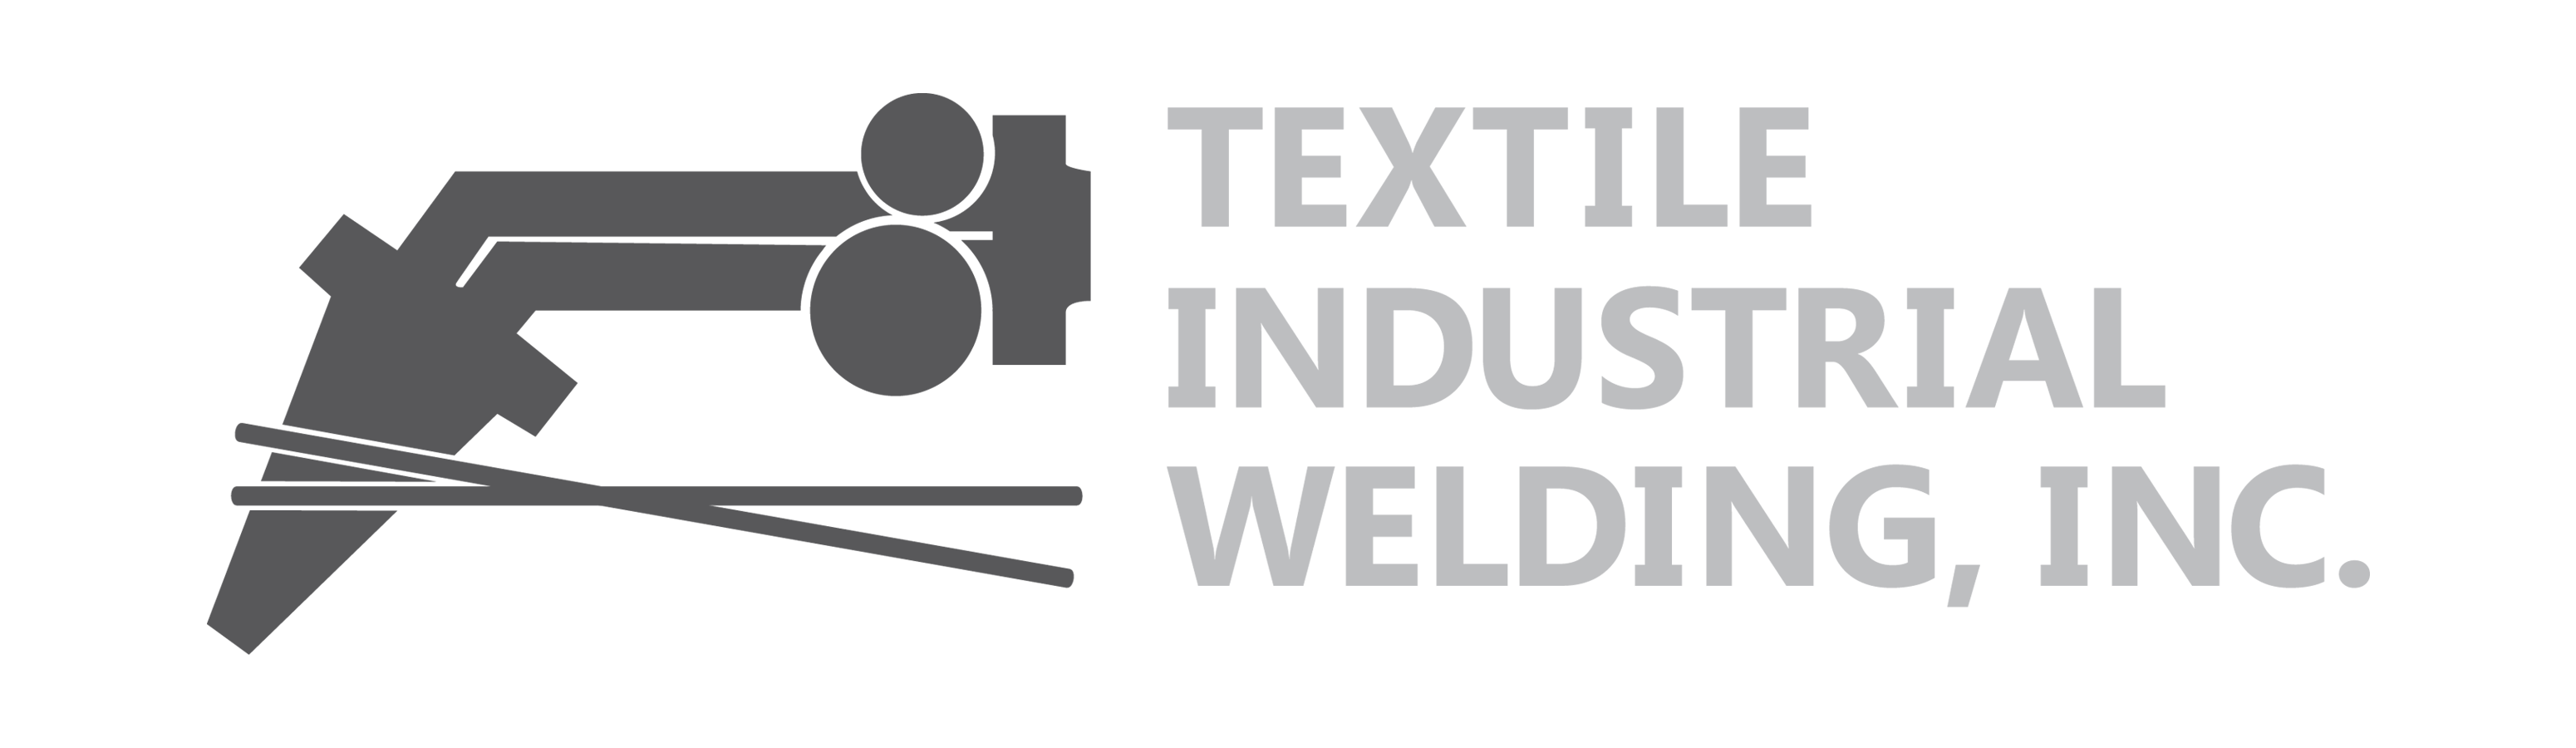 Industry textile industry